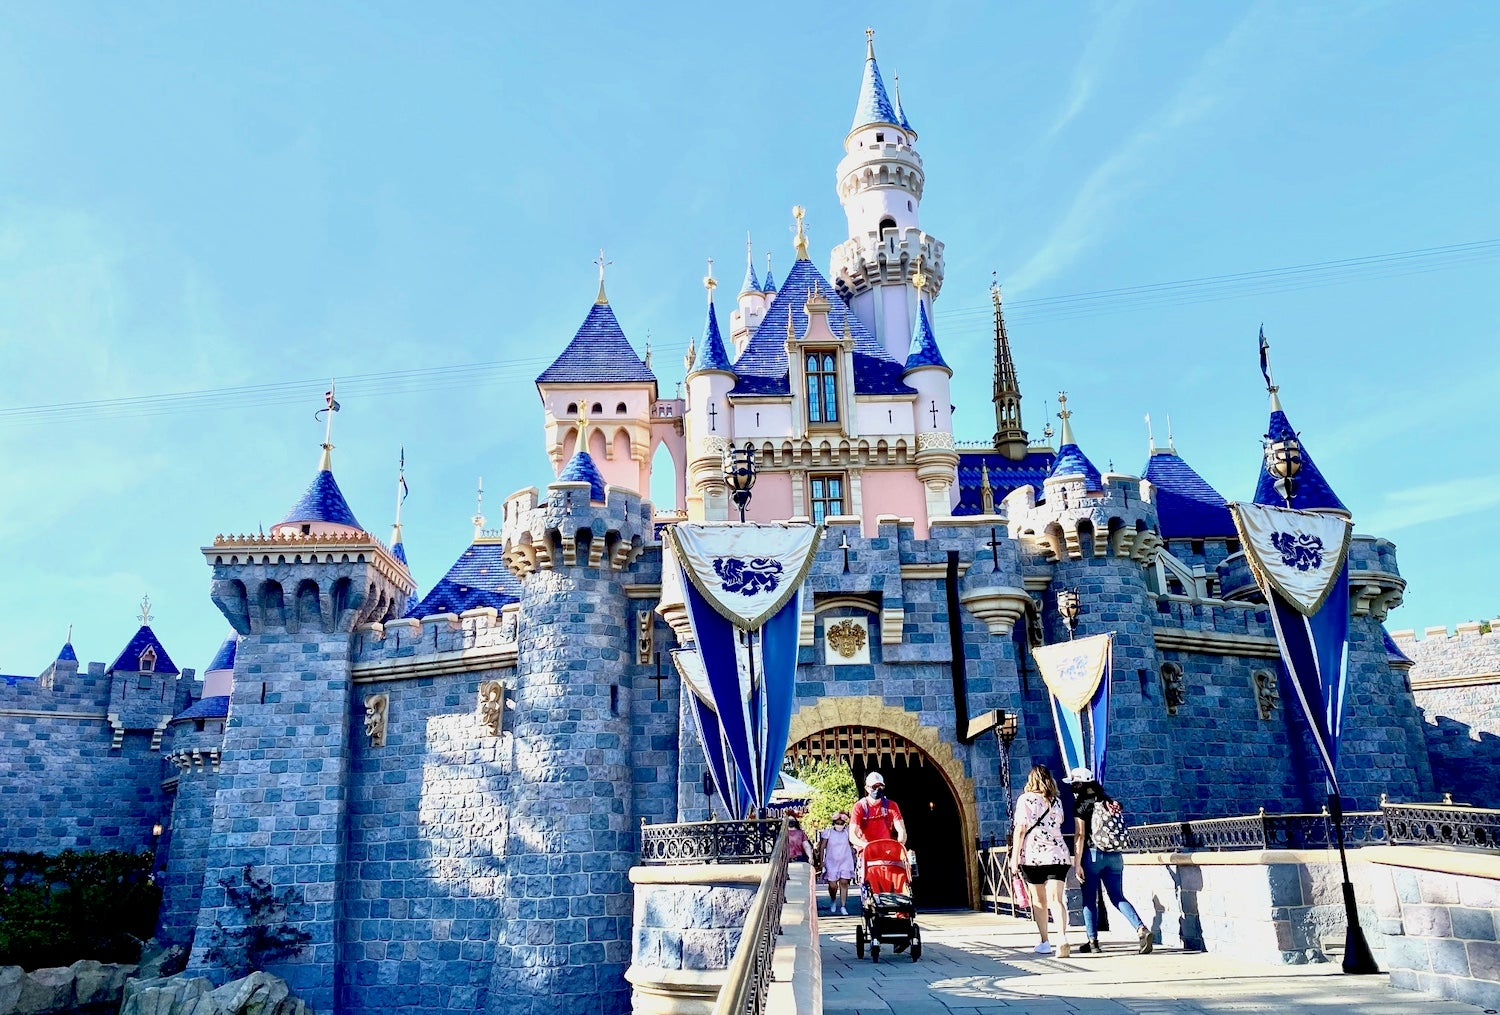 Another Disneyland ride is testing out virtual queues — will this be the new norm?